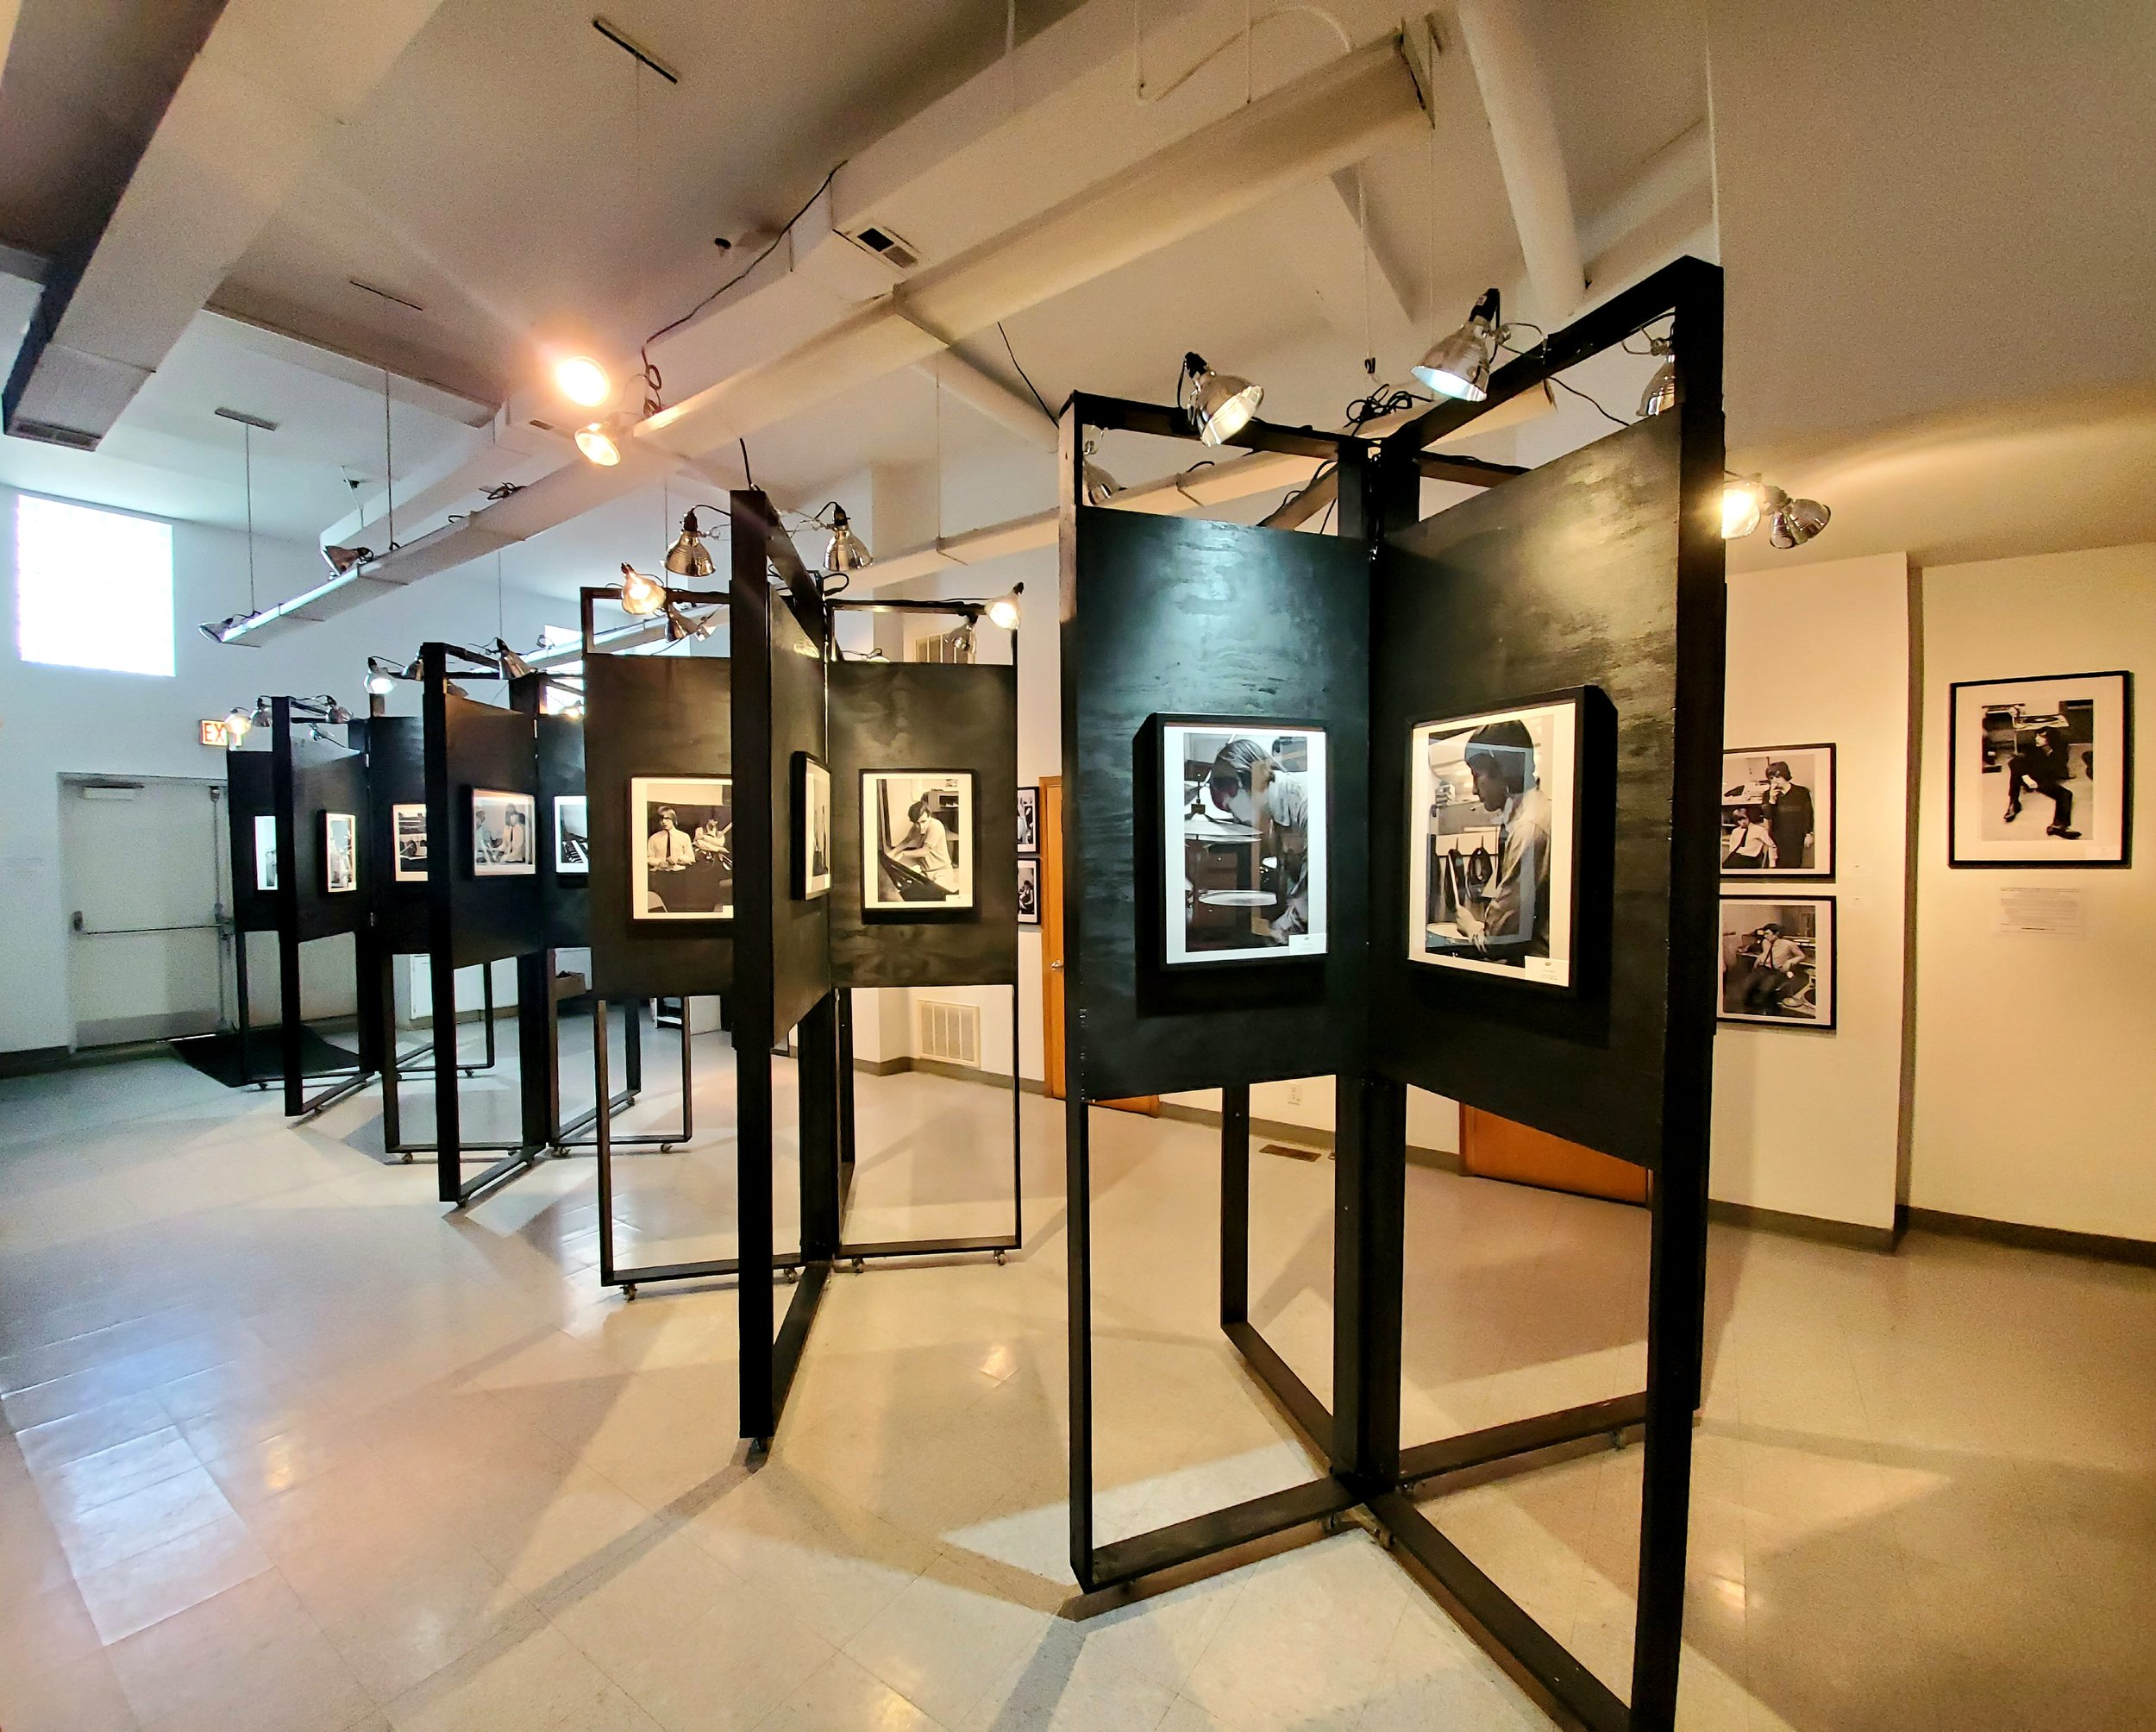 Photos that are part of the Rolling Stones At Chess exhibition